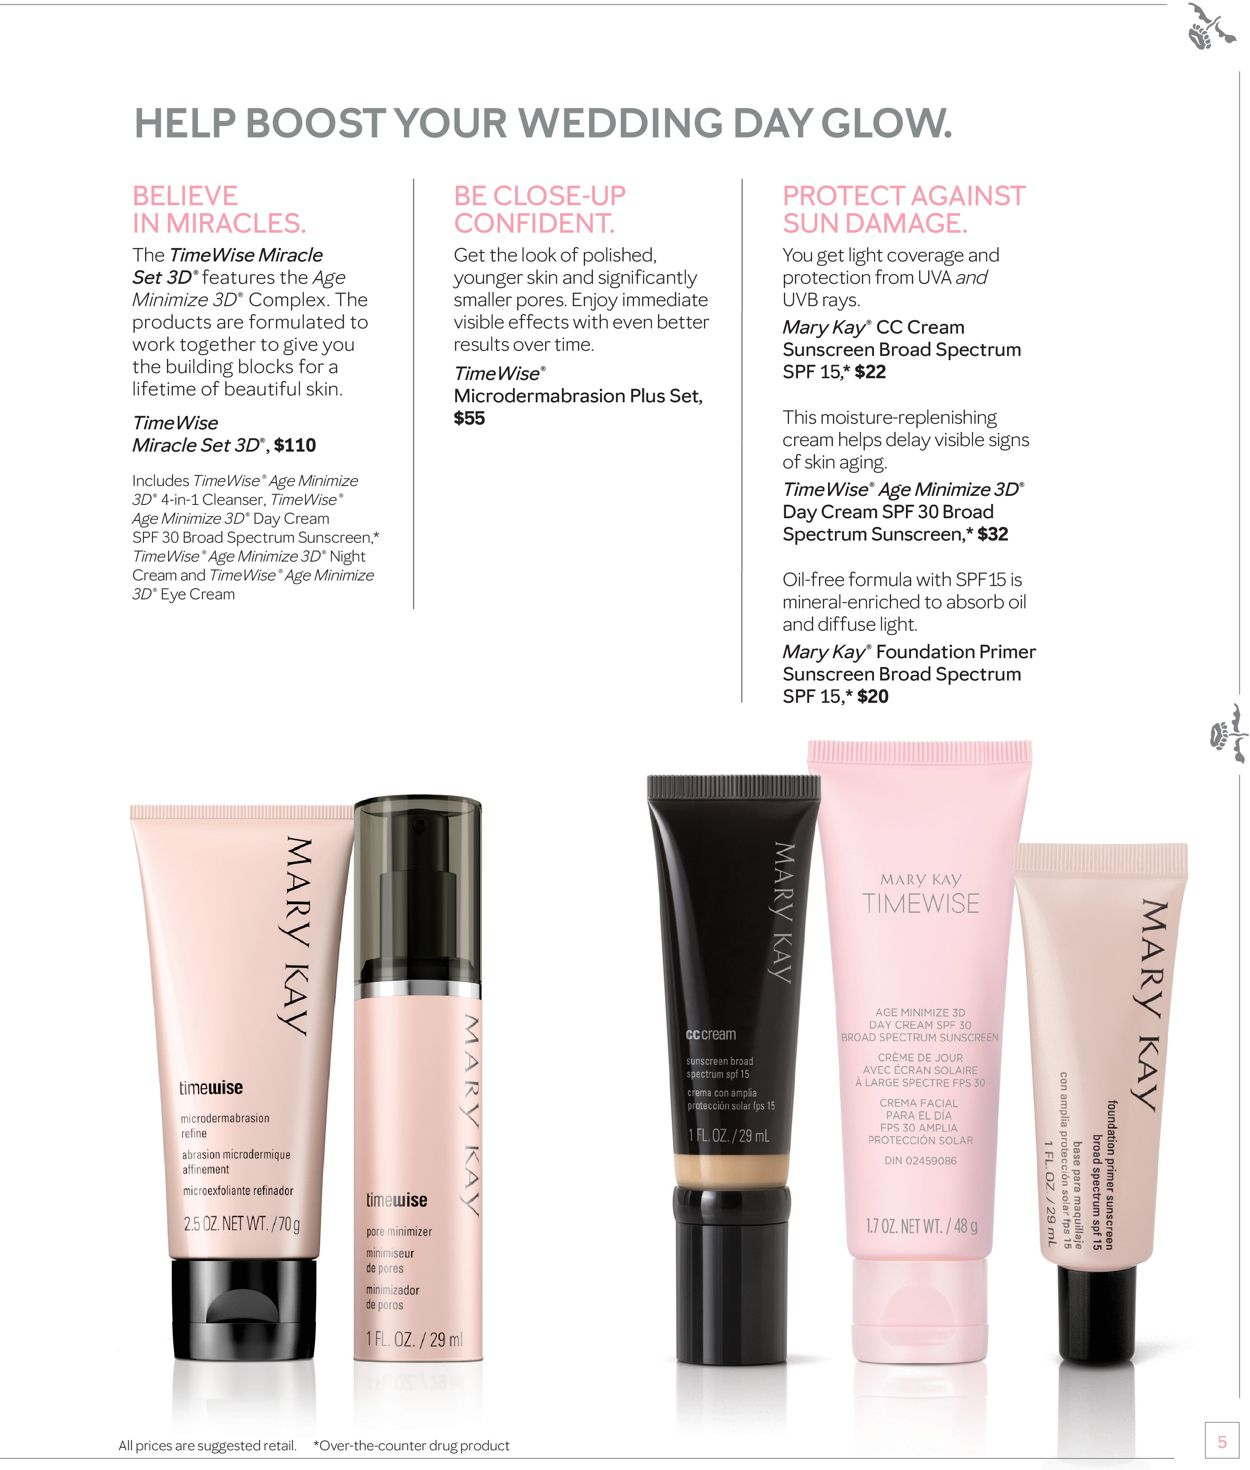 Mary Kay Current Weekly Ad 11 13 12 31 2019 5 Frequent Ads Com